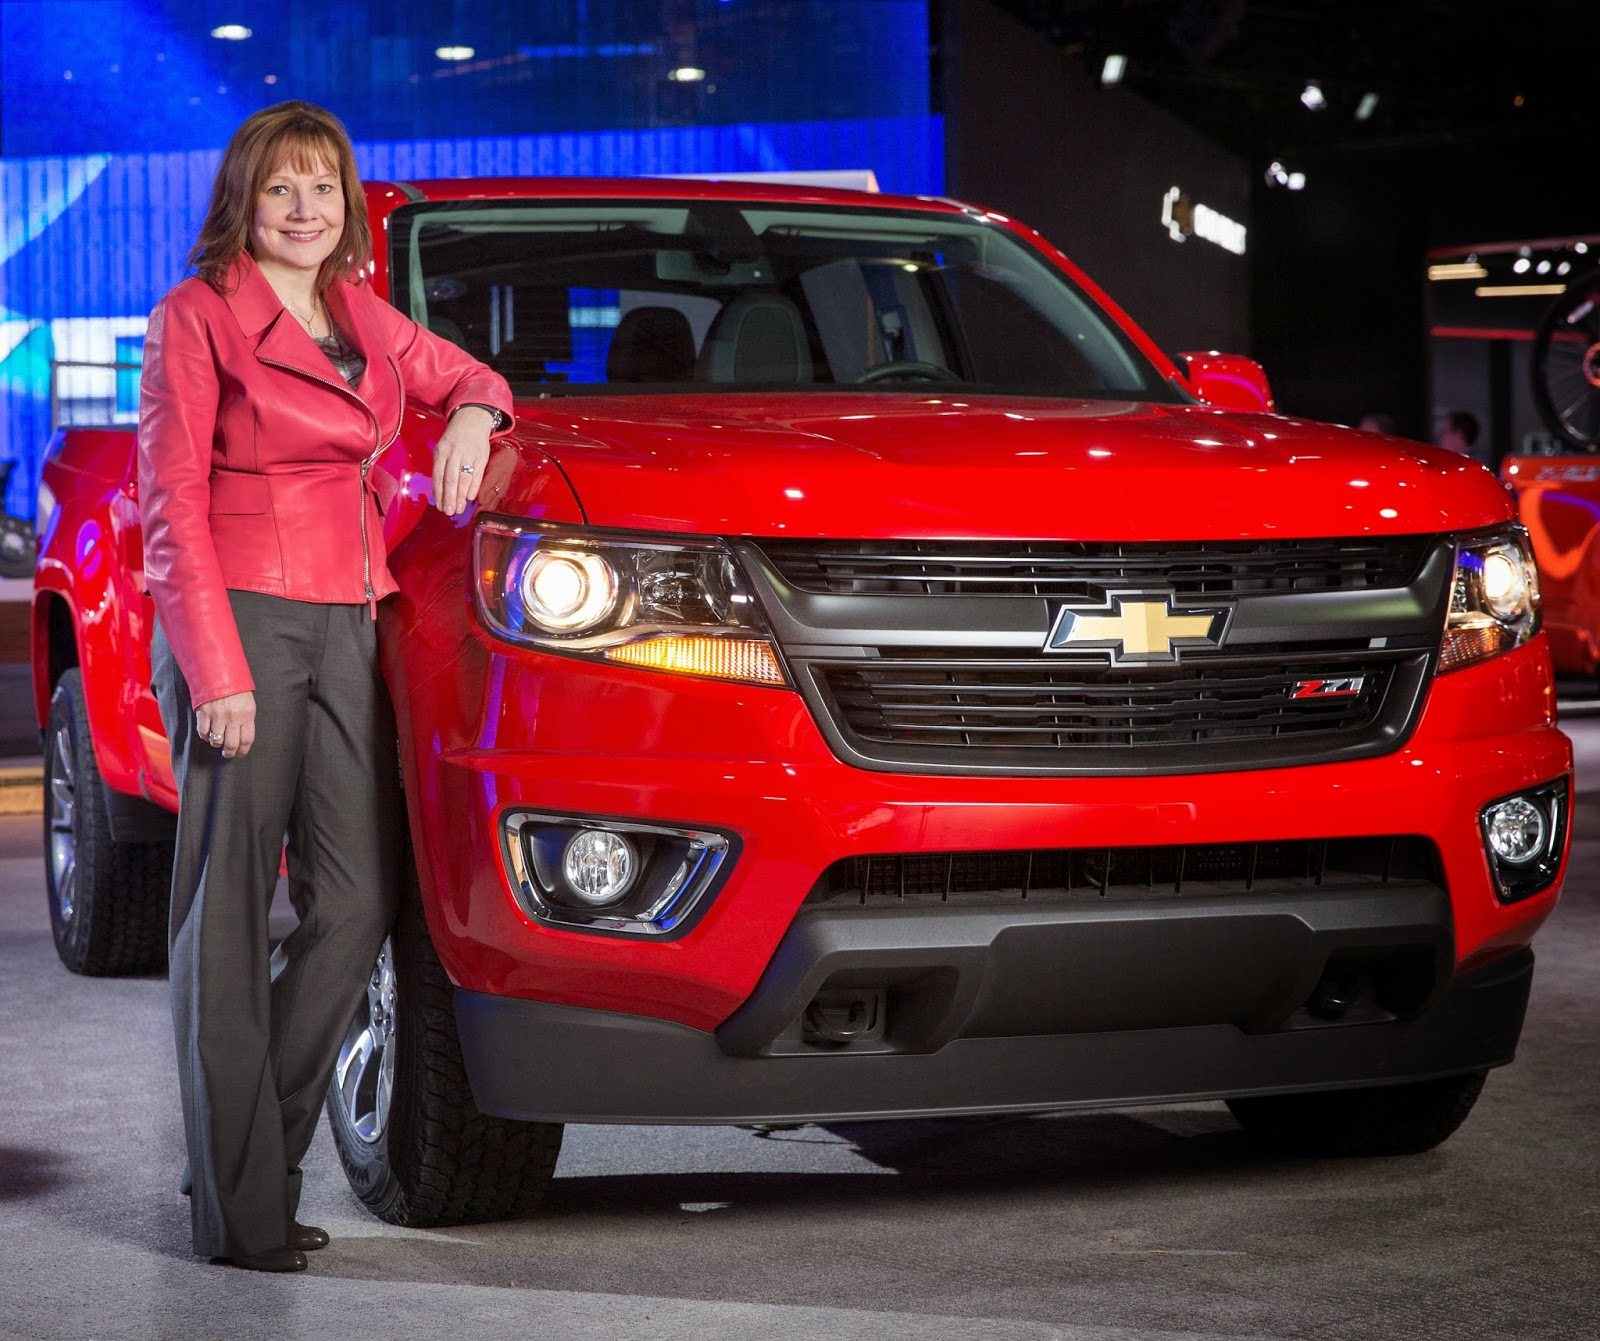 Chevrolet Colorado Named Cars.com Best Pickup Truck of 2015